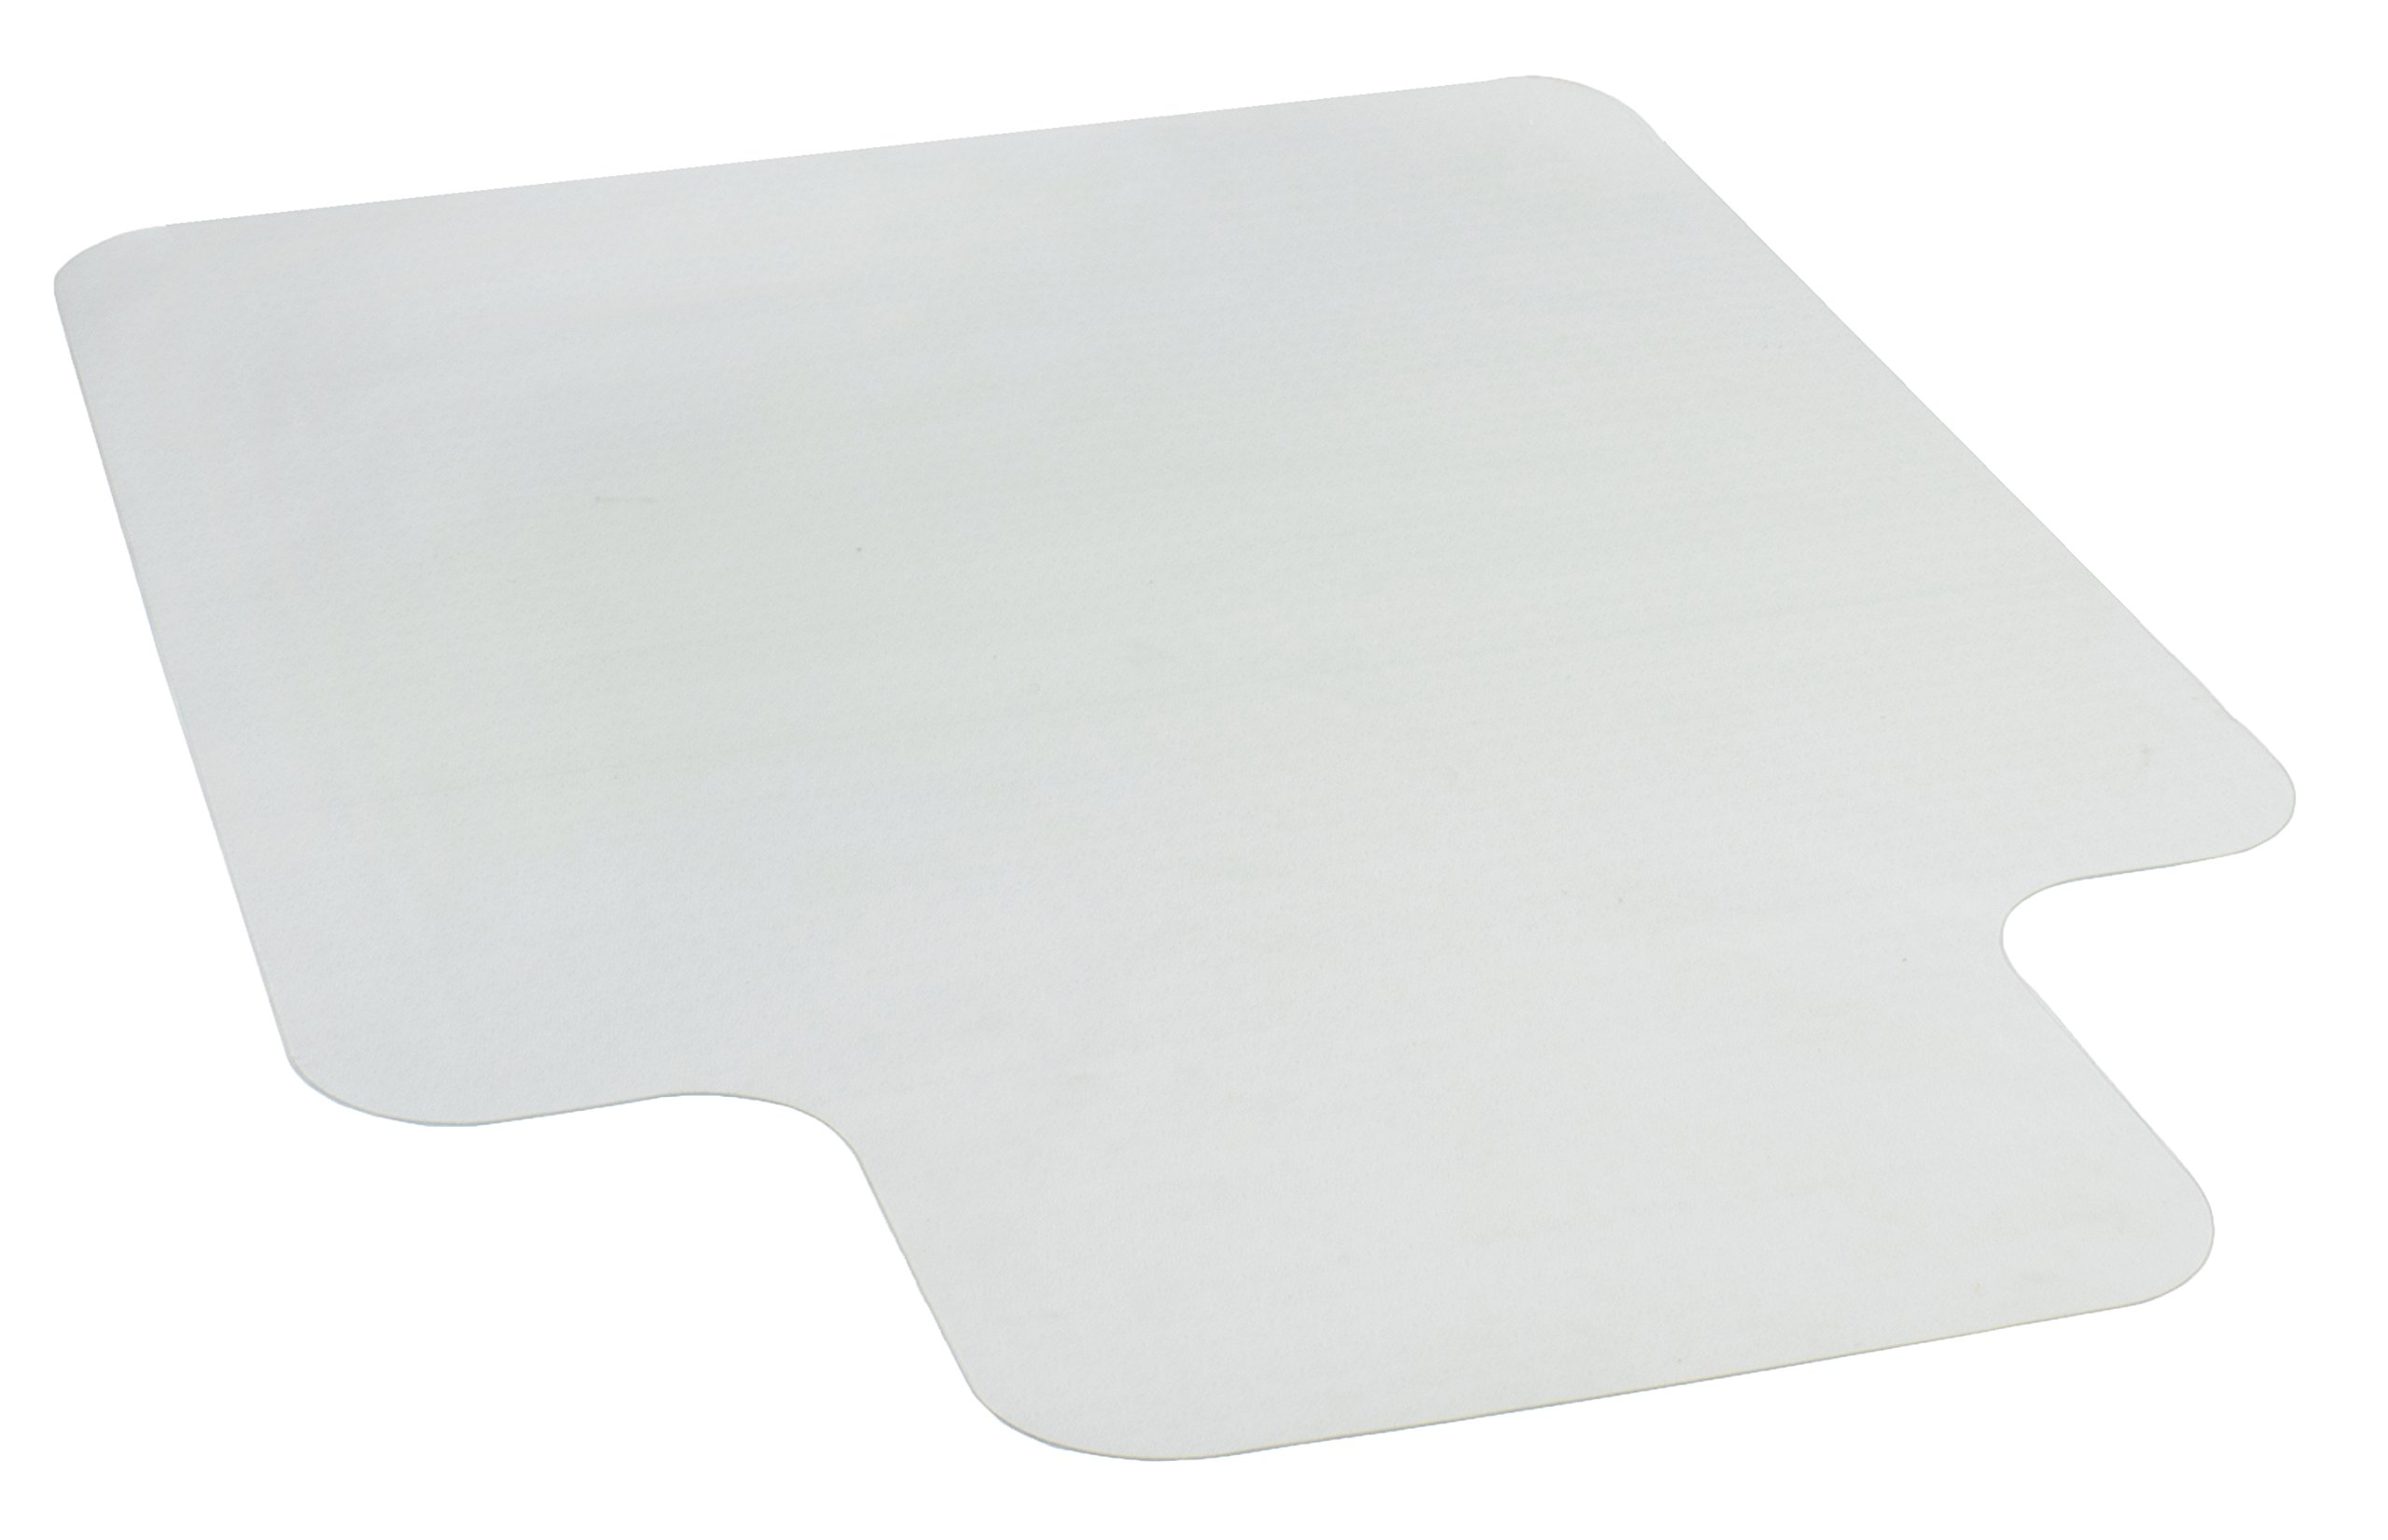 "VIVO Clear Computer Chair Protective Hardwood Floor Hard Surface Cover 47"" x 35"" Grip Mat (MAT-H-047)"